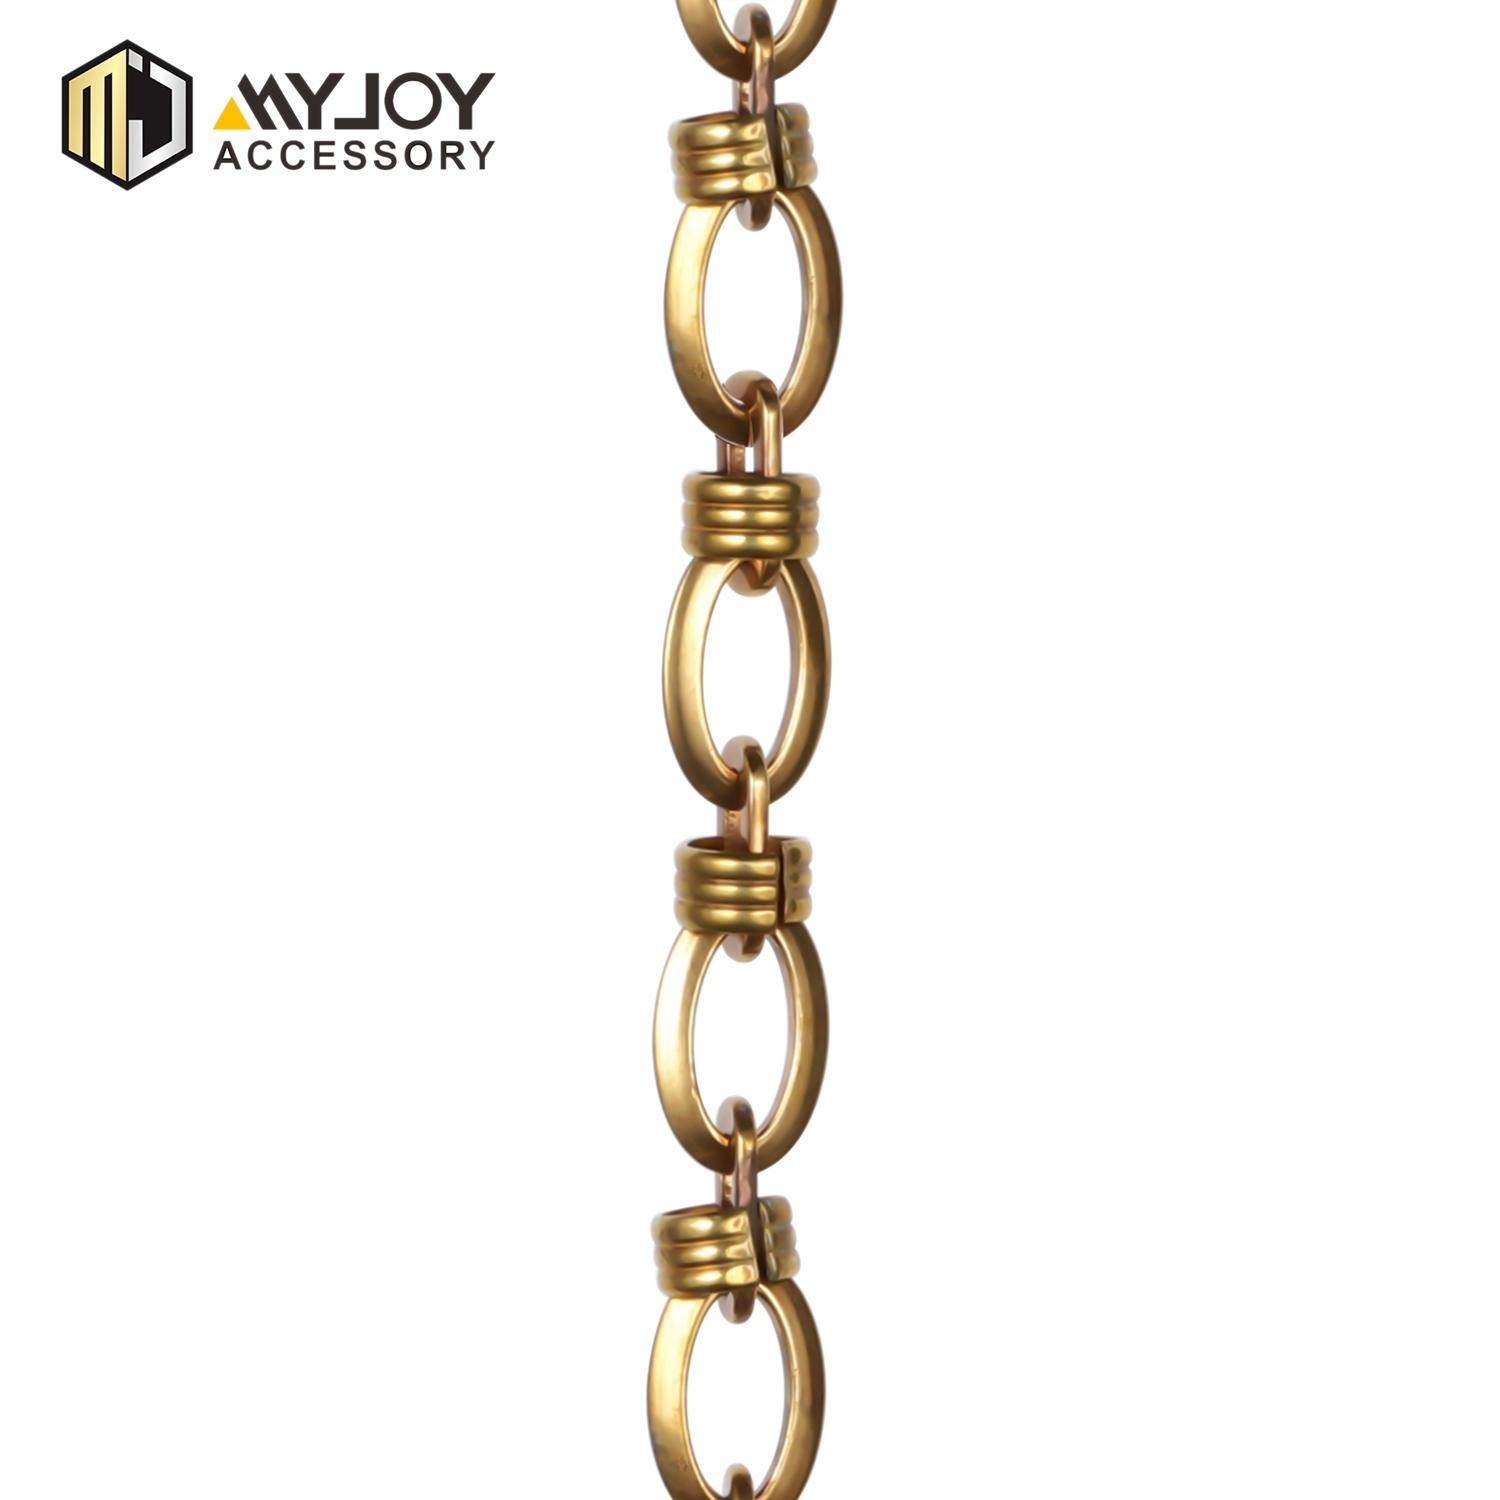 MYJOY vogue purse chain Supply for purses